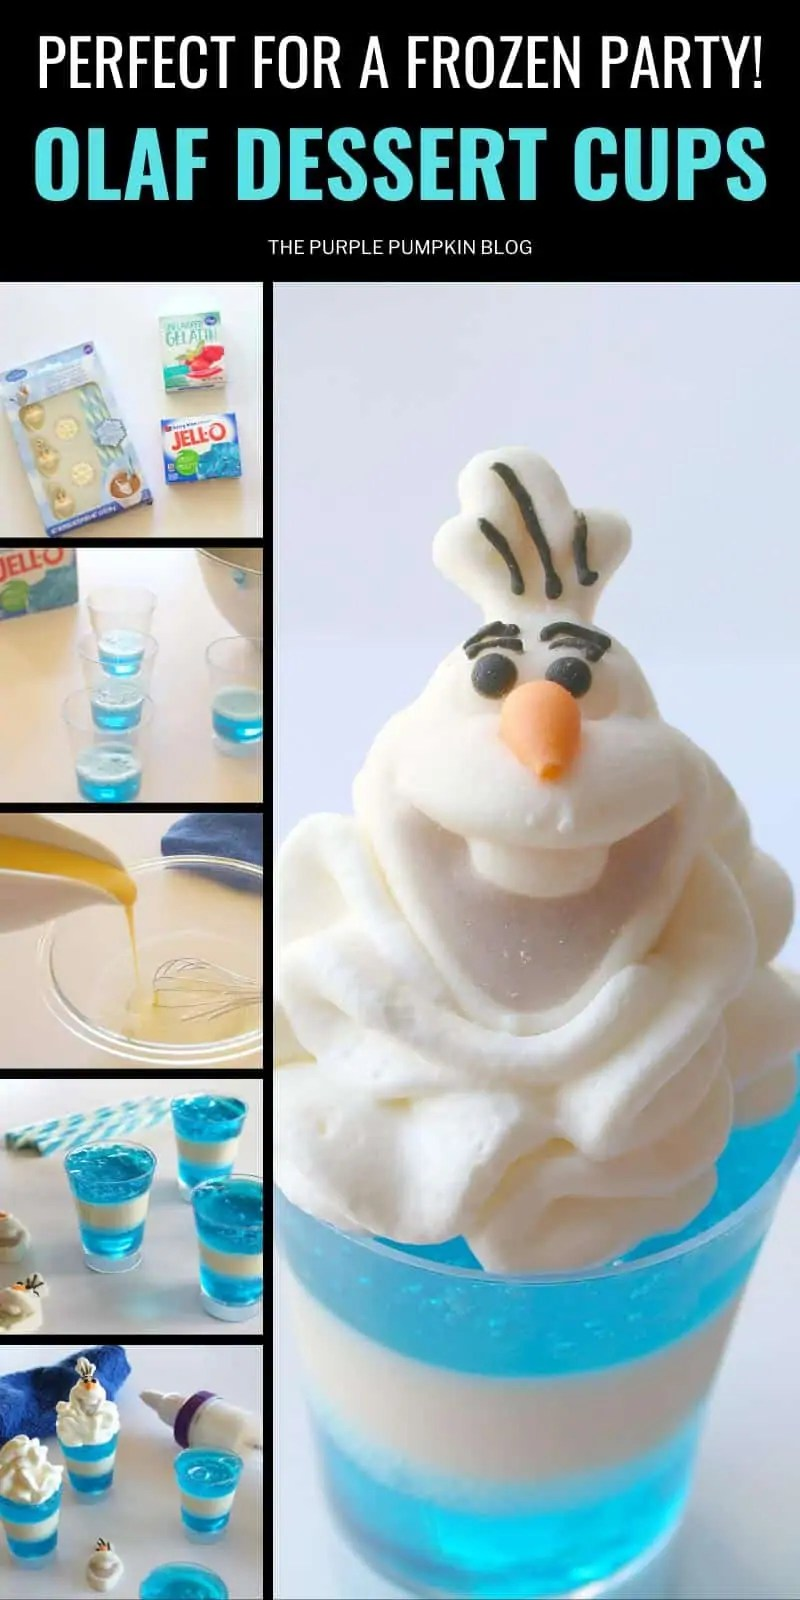 Perfect for a frozen party - Olaf Dessert Cups